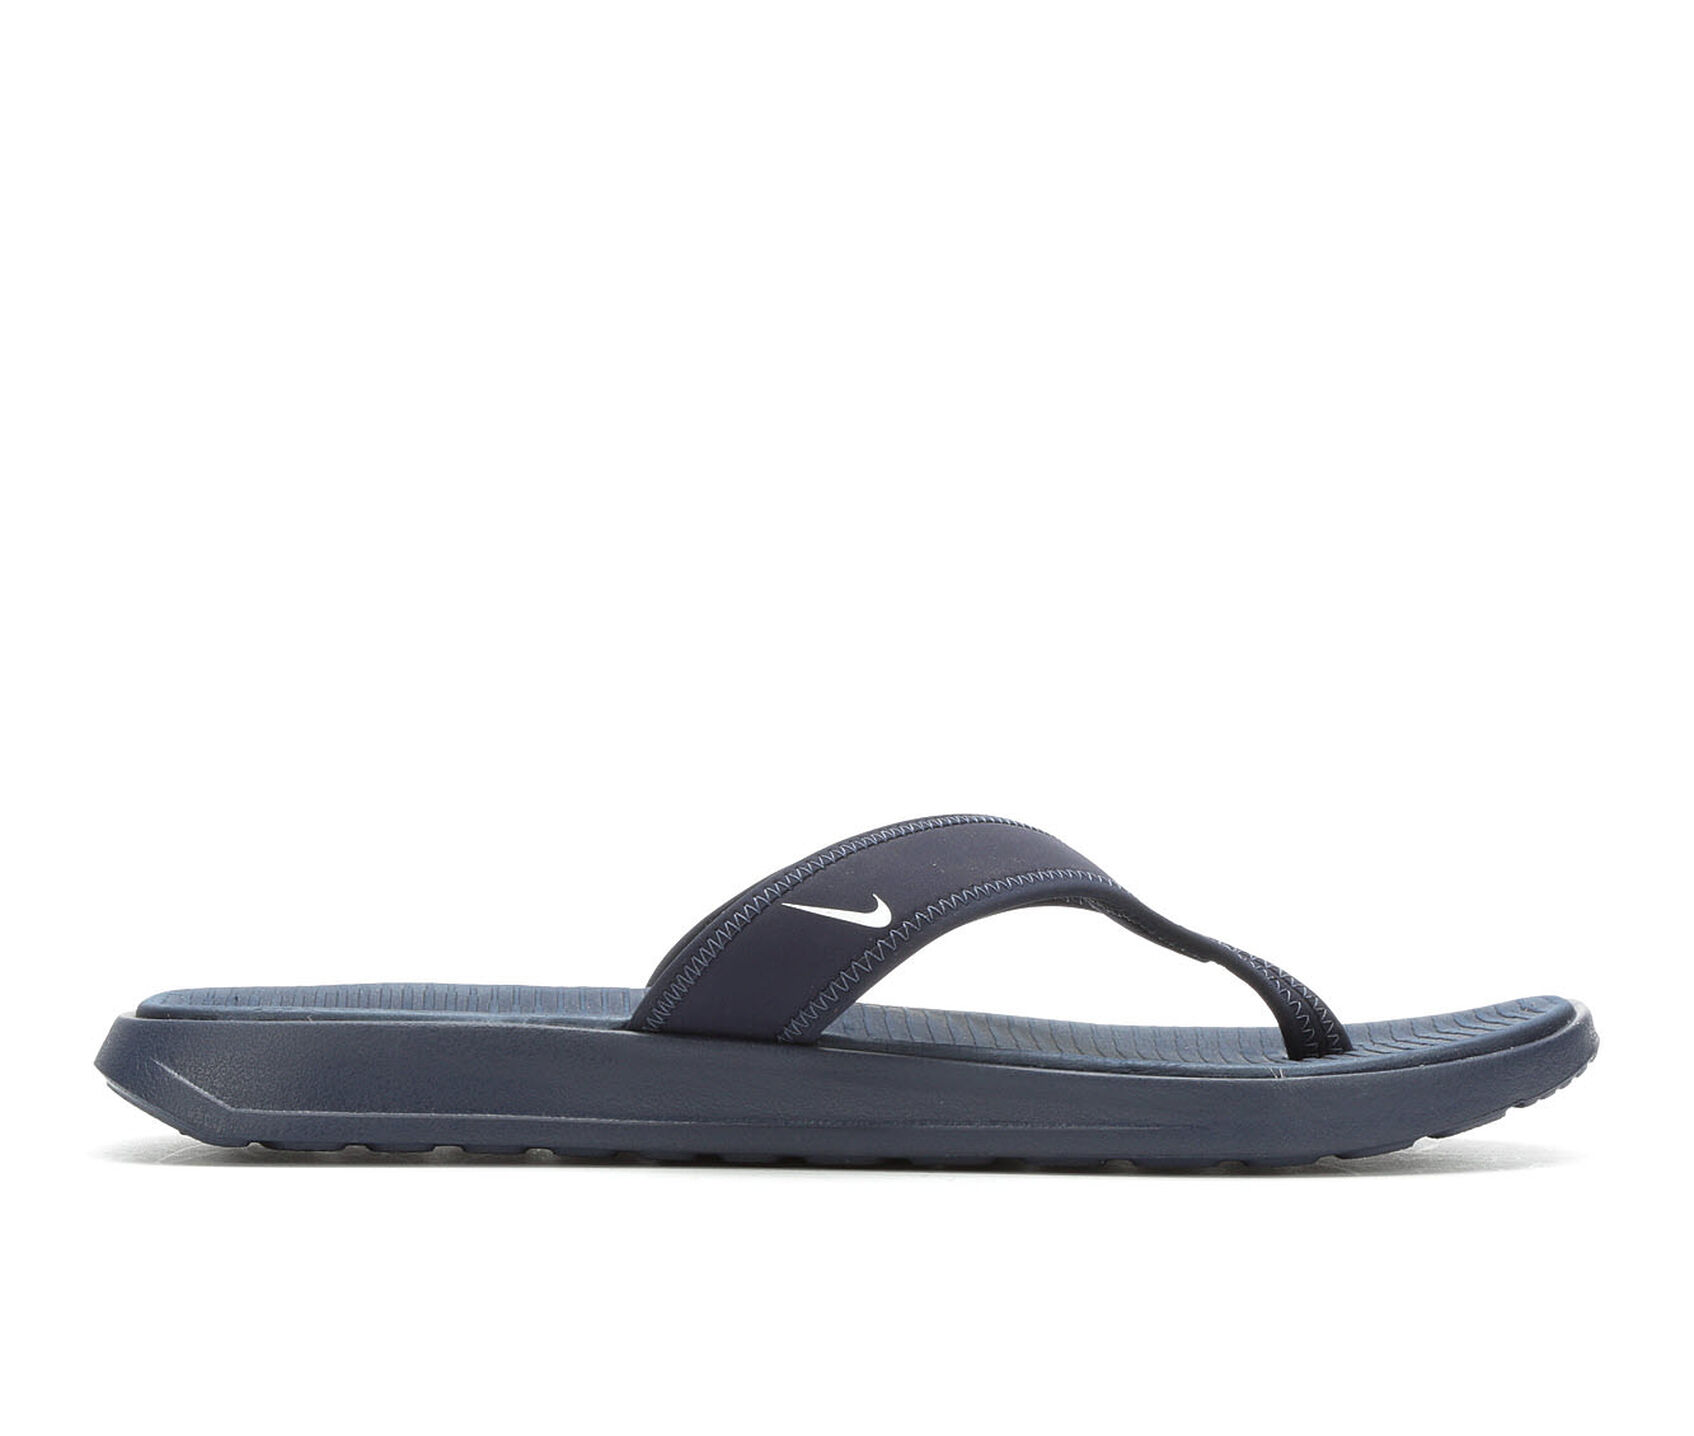 e90623daa75b ... Nike Ultra Celso Thong Flip-Flops. Previous